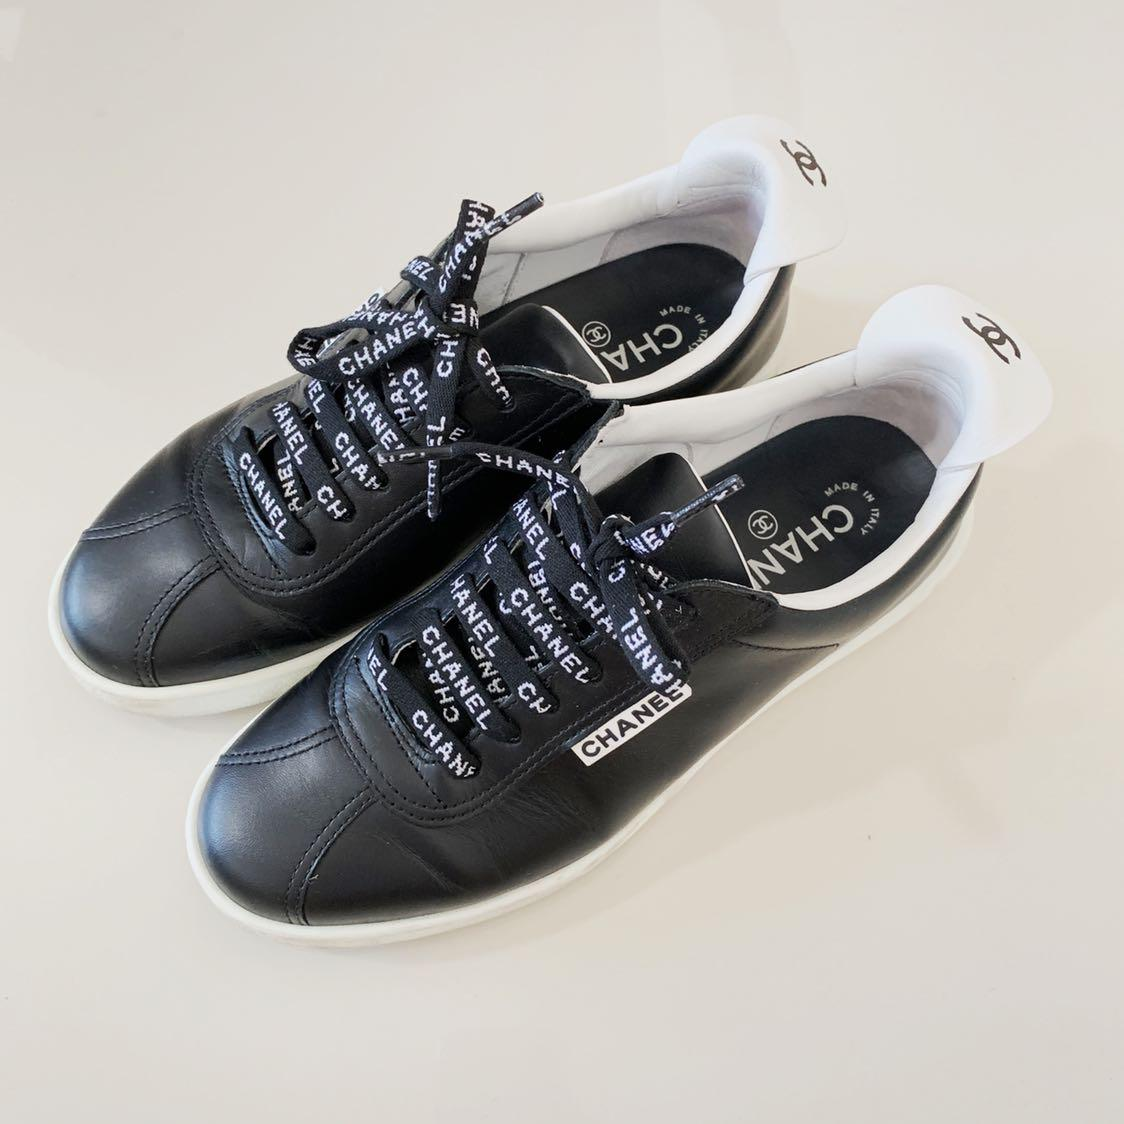 Chanel Sneakers Size 37, Luxury, Shoes